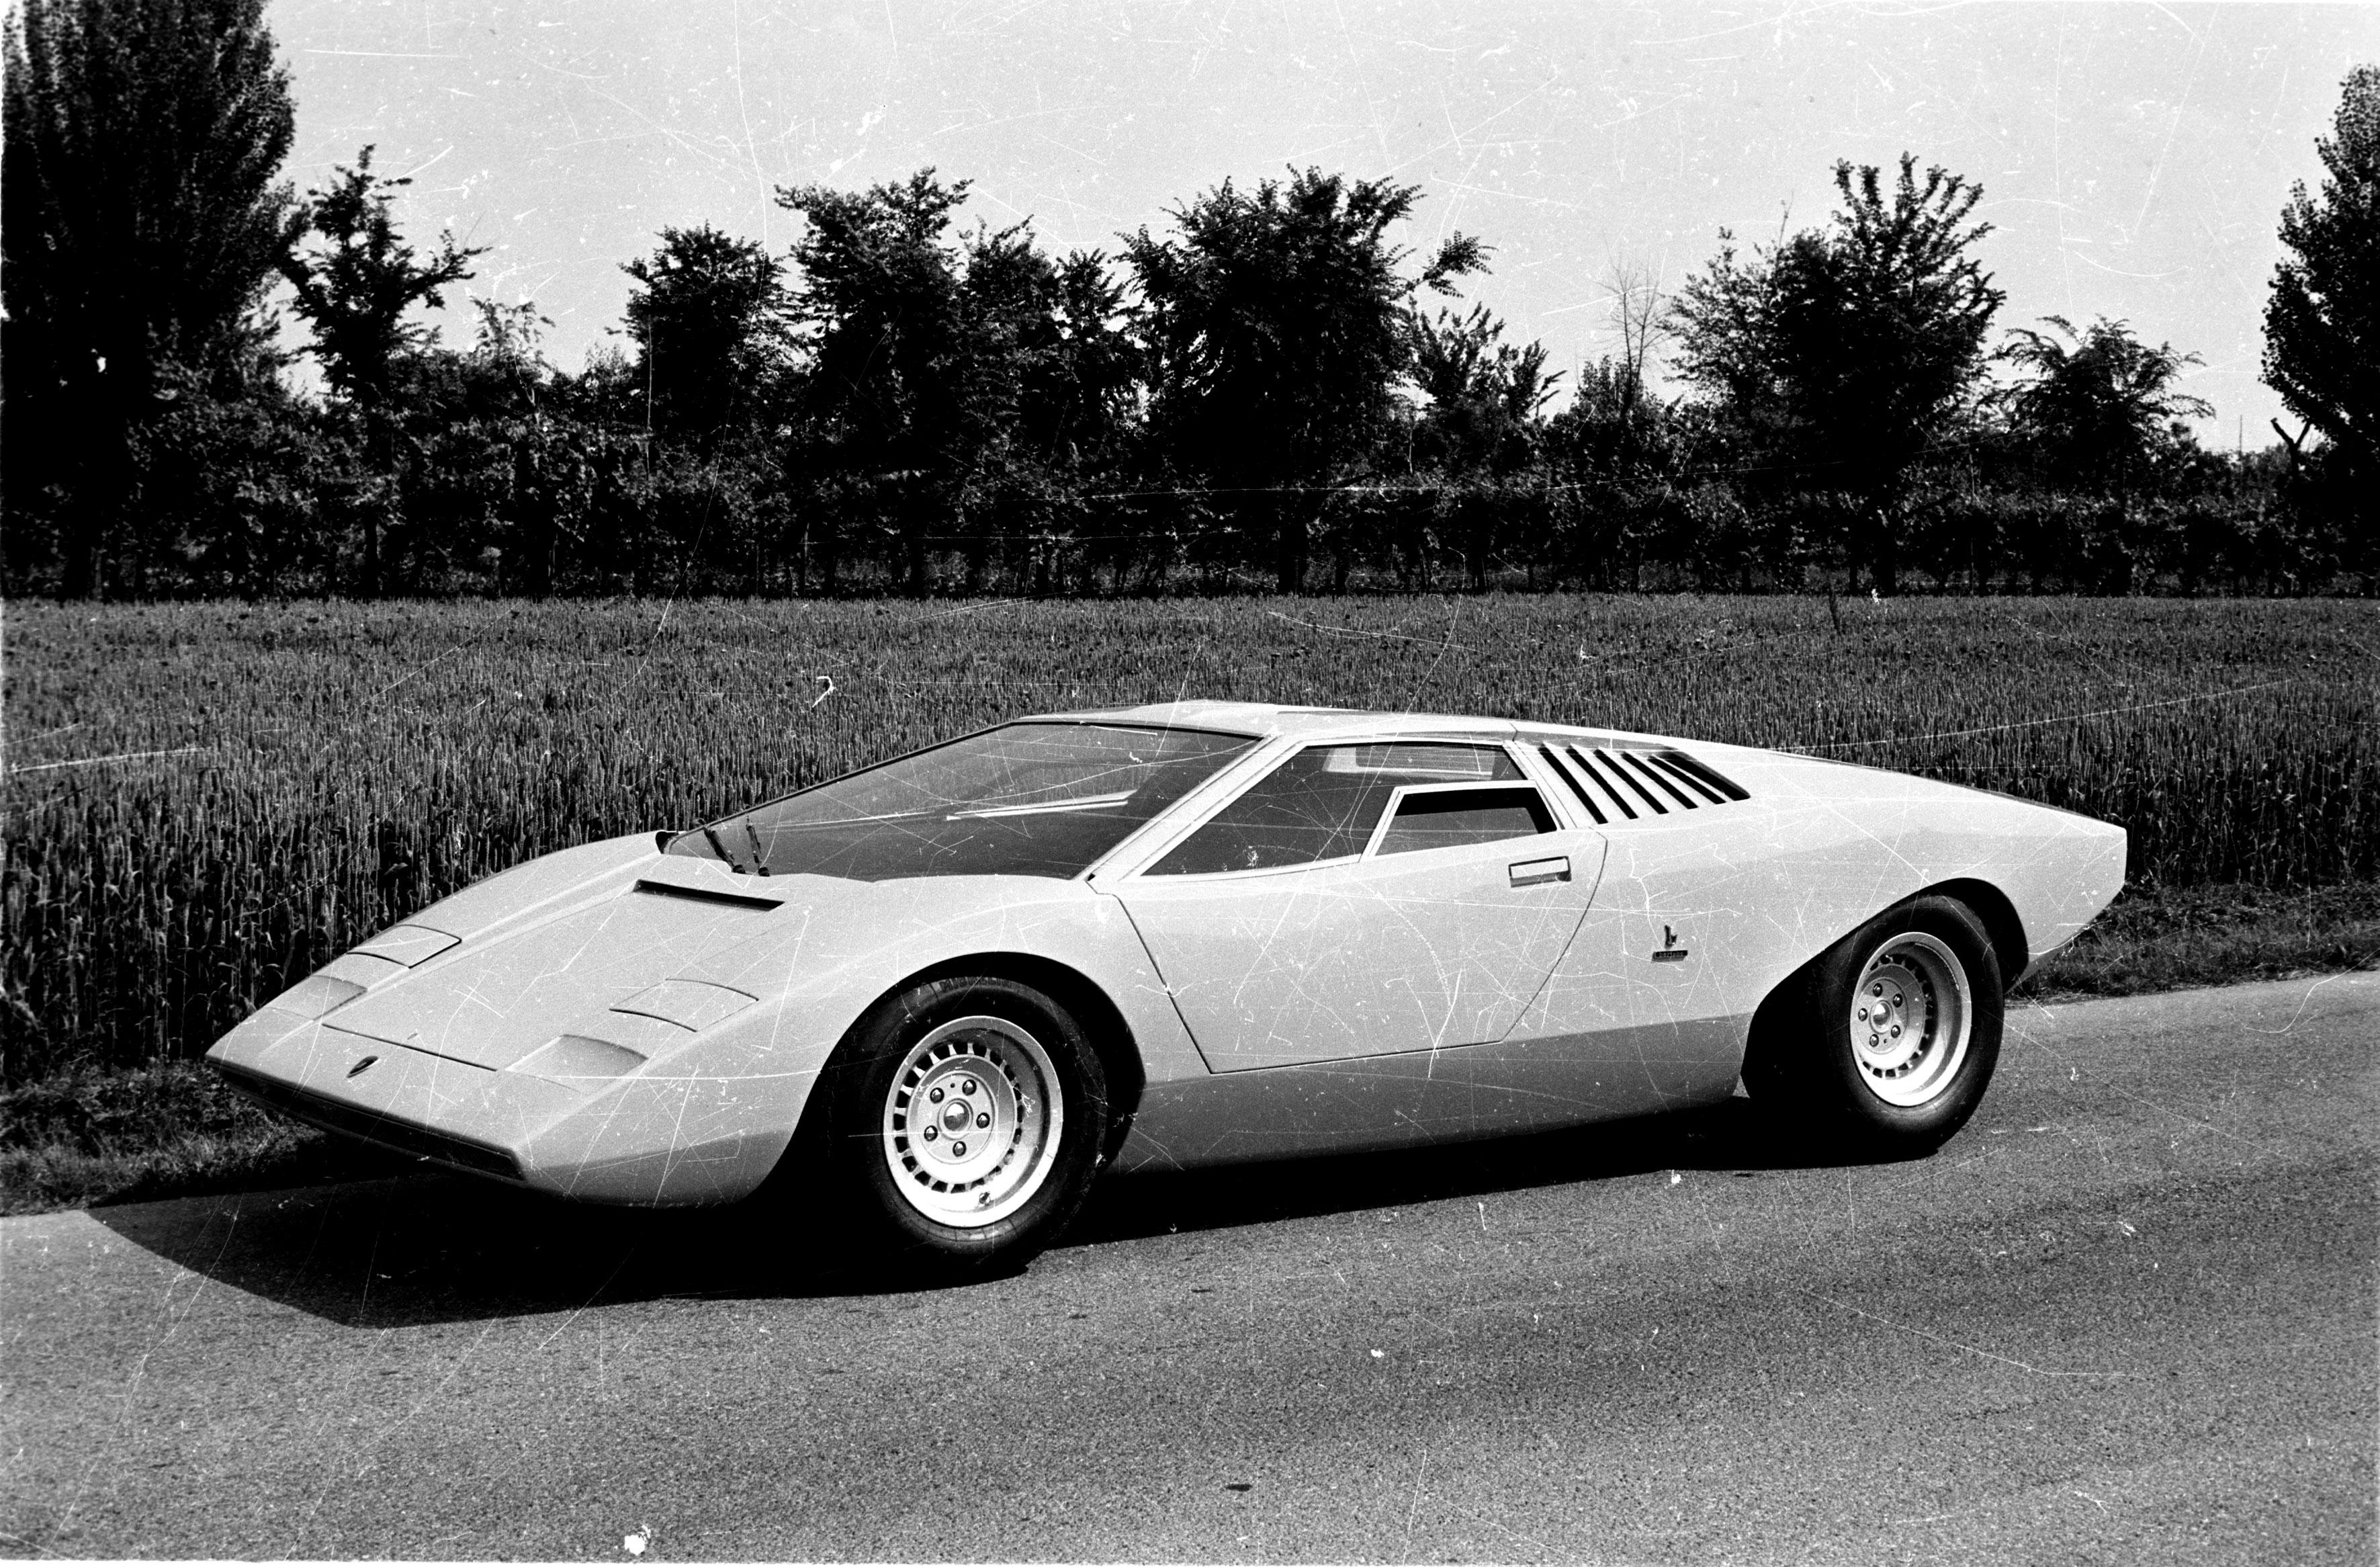 Lamborghini Countach LP 500 turns 50 years old on March 11, 2021